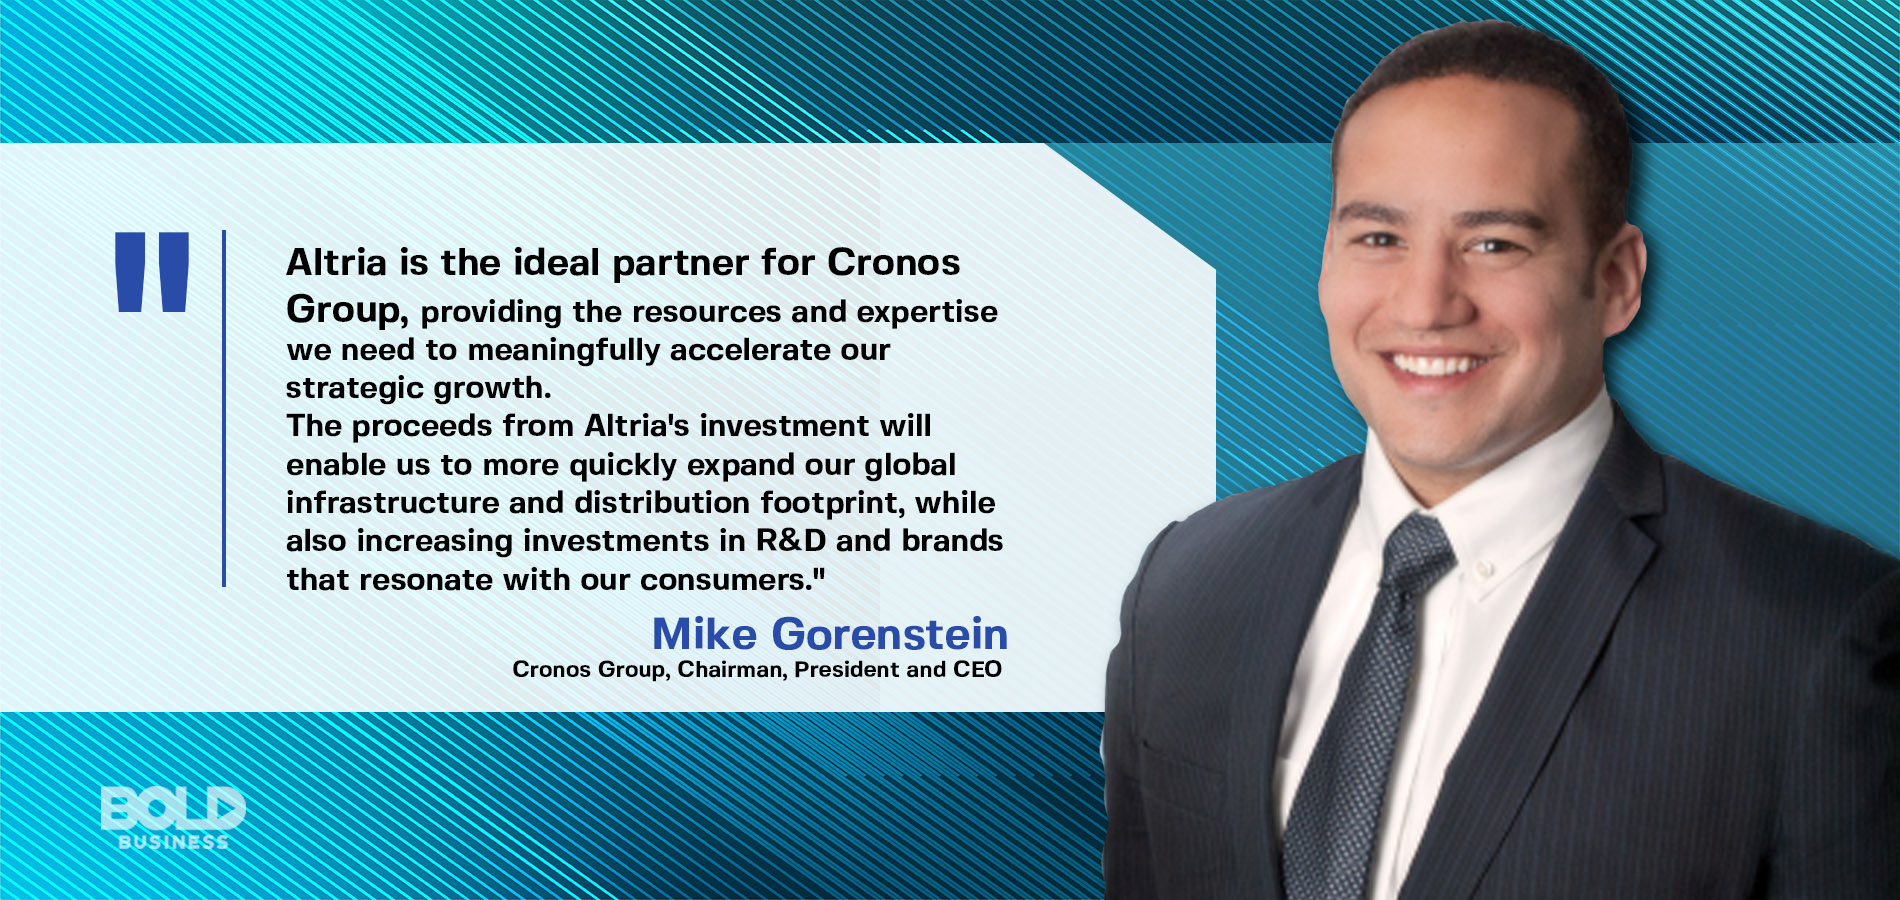 a photo quote from Mike Gorenstein, Cronos Group's chairman, president and chief executive officer, on the bold impact of Altria's investment in the Cronos company